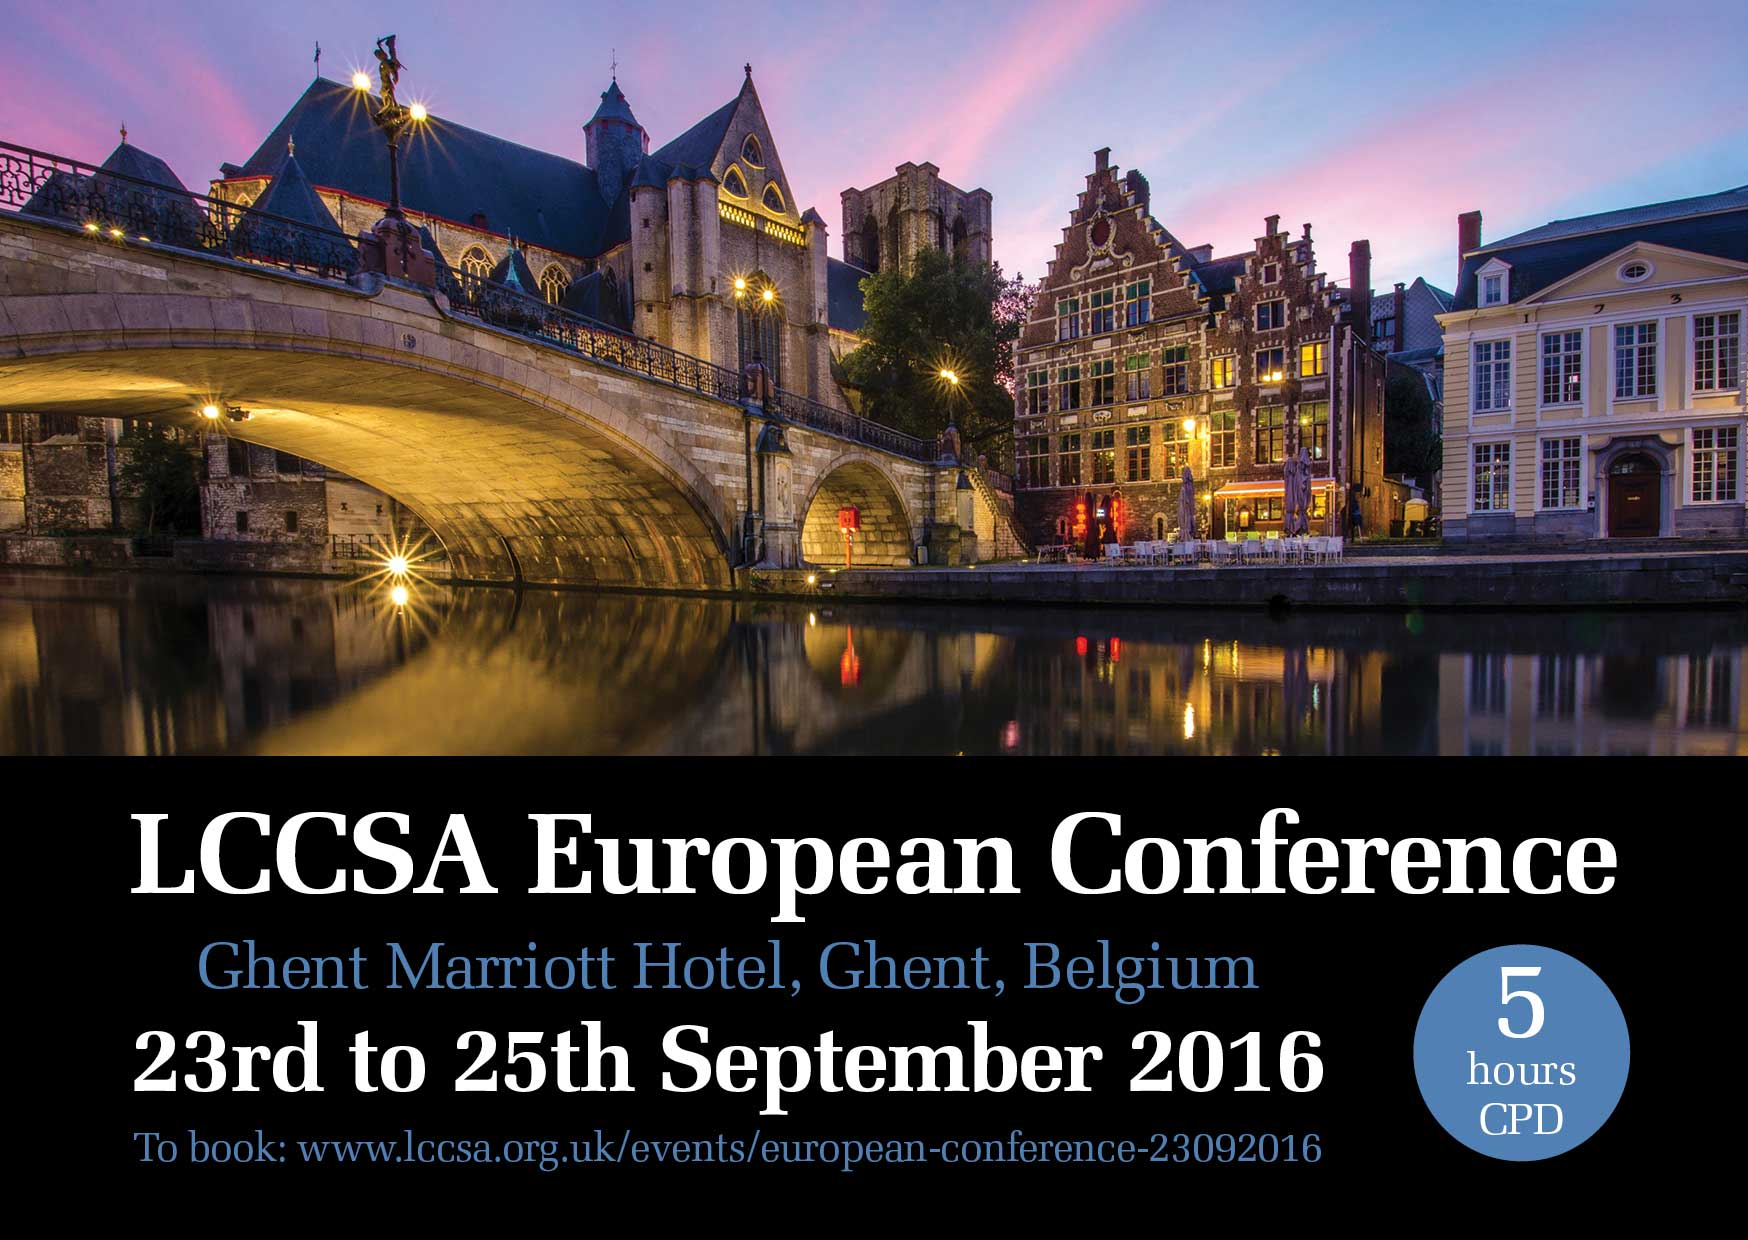 Advert for LCCSA European Conference (2016)